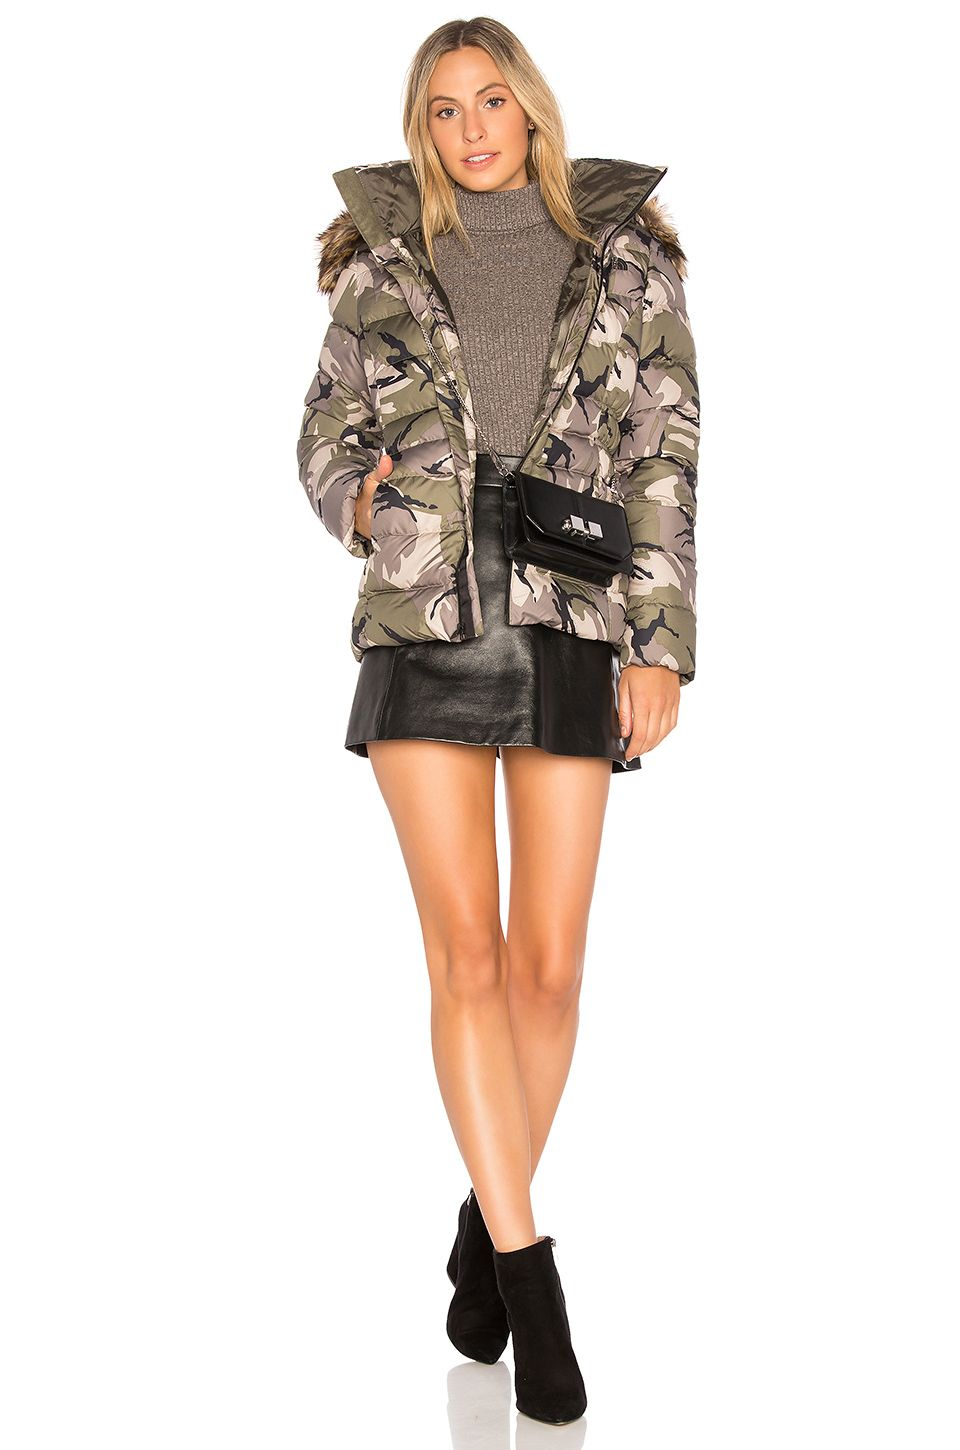 The North Face Gotham Jacket Ii In Burnt Olive Green Disrupt Camo Revolve Jackets Clothes For Women Clothes Design [ 1450 x 960 Pixel ]